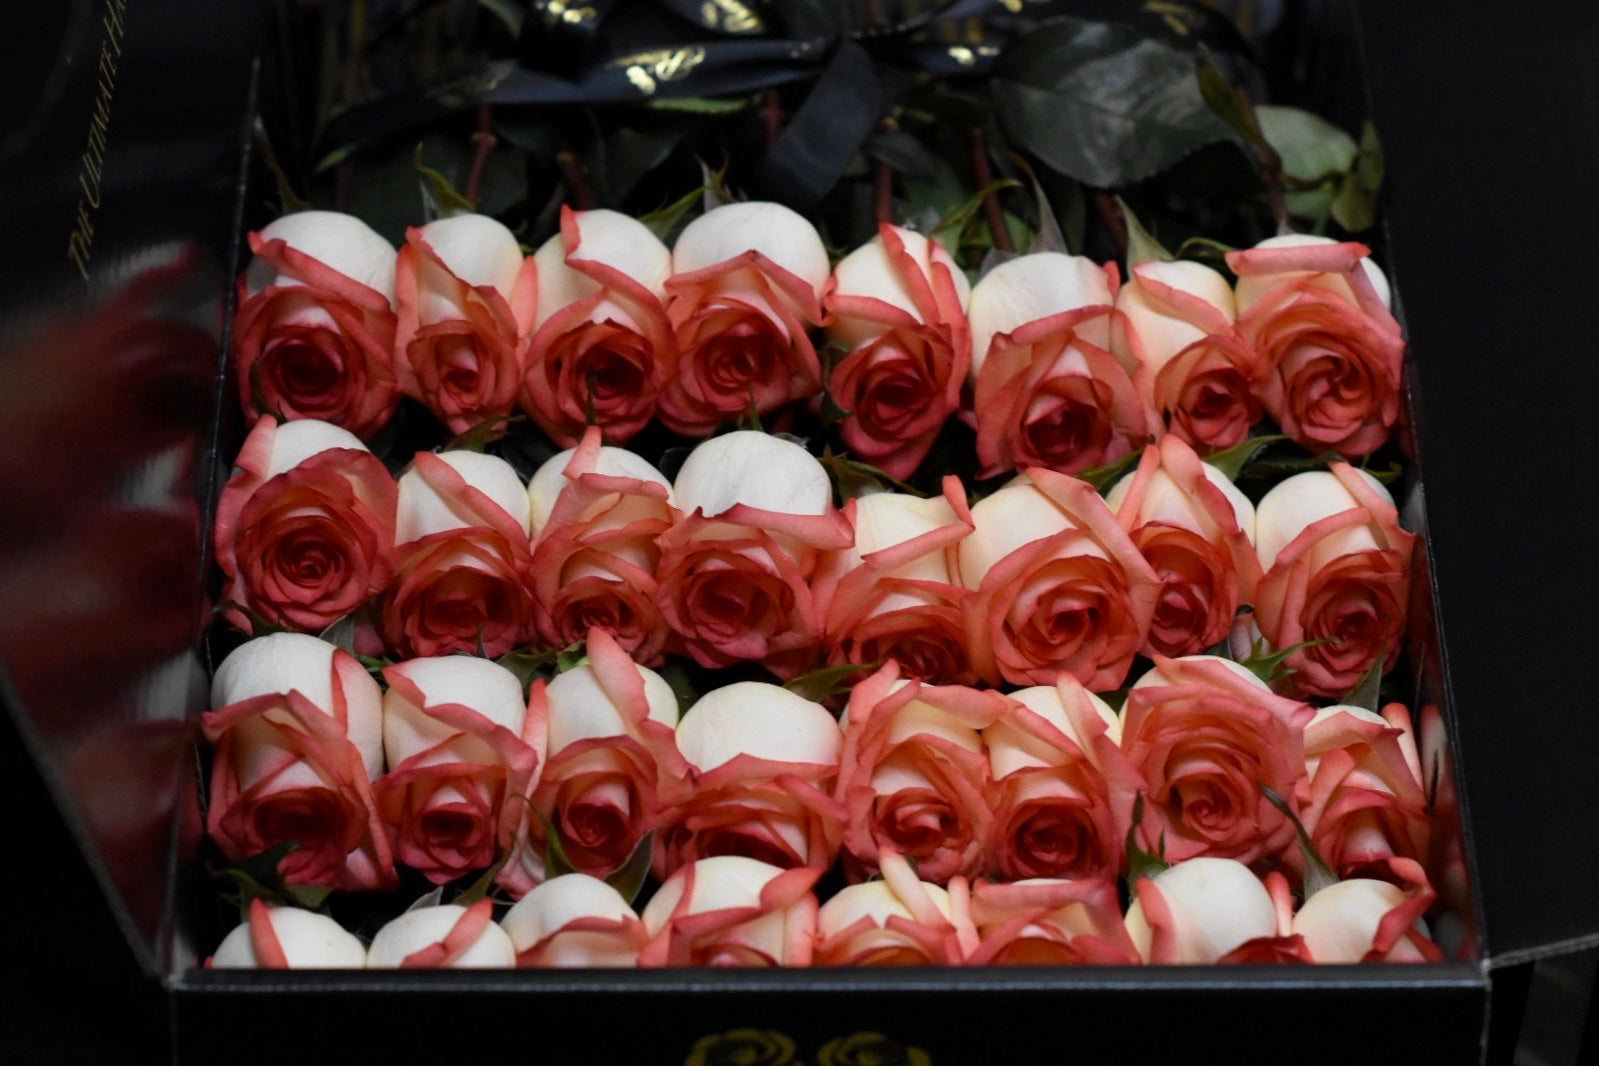 expensive roses in a box